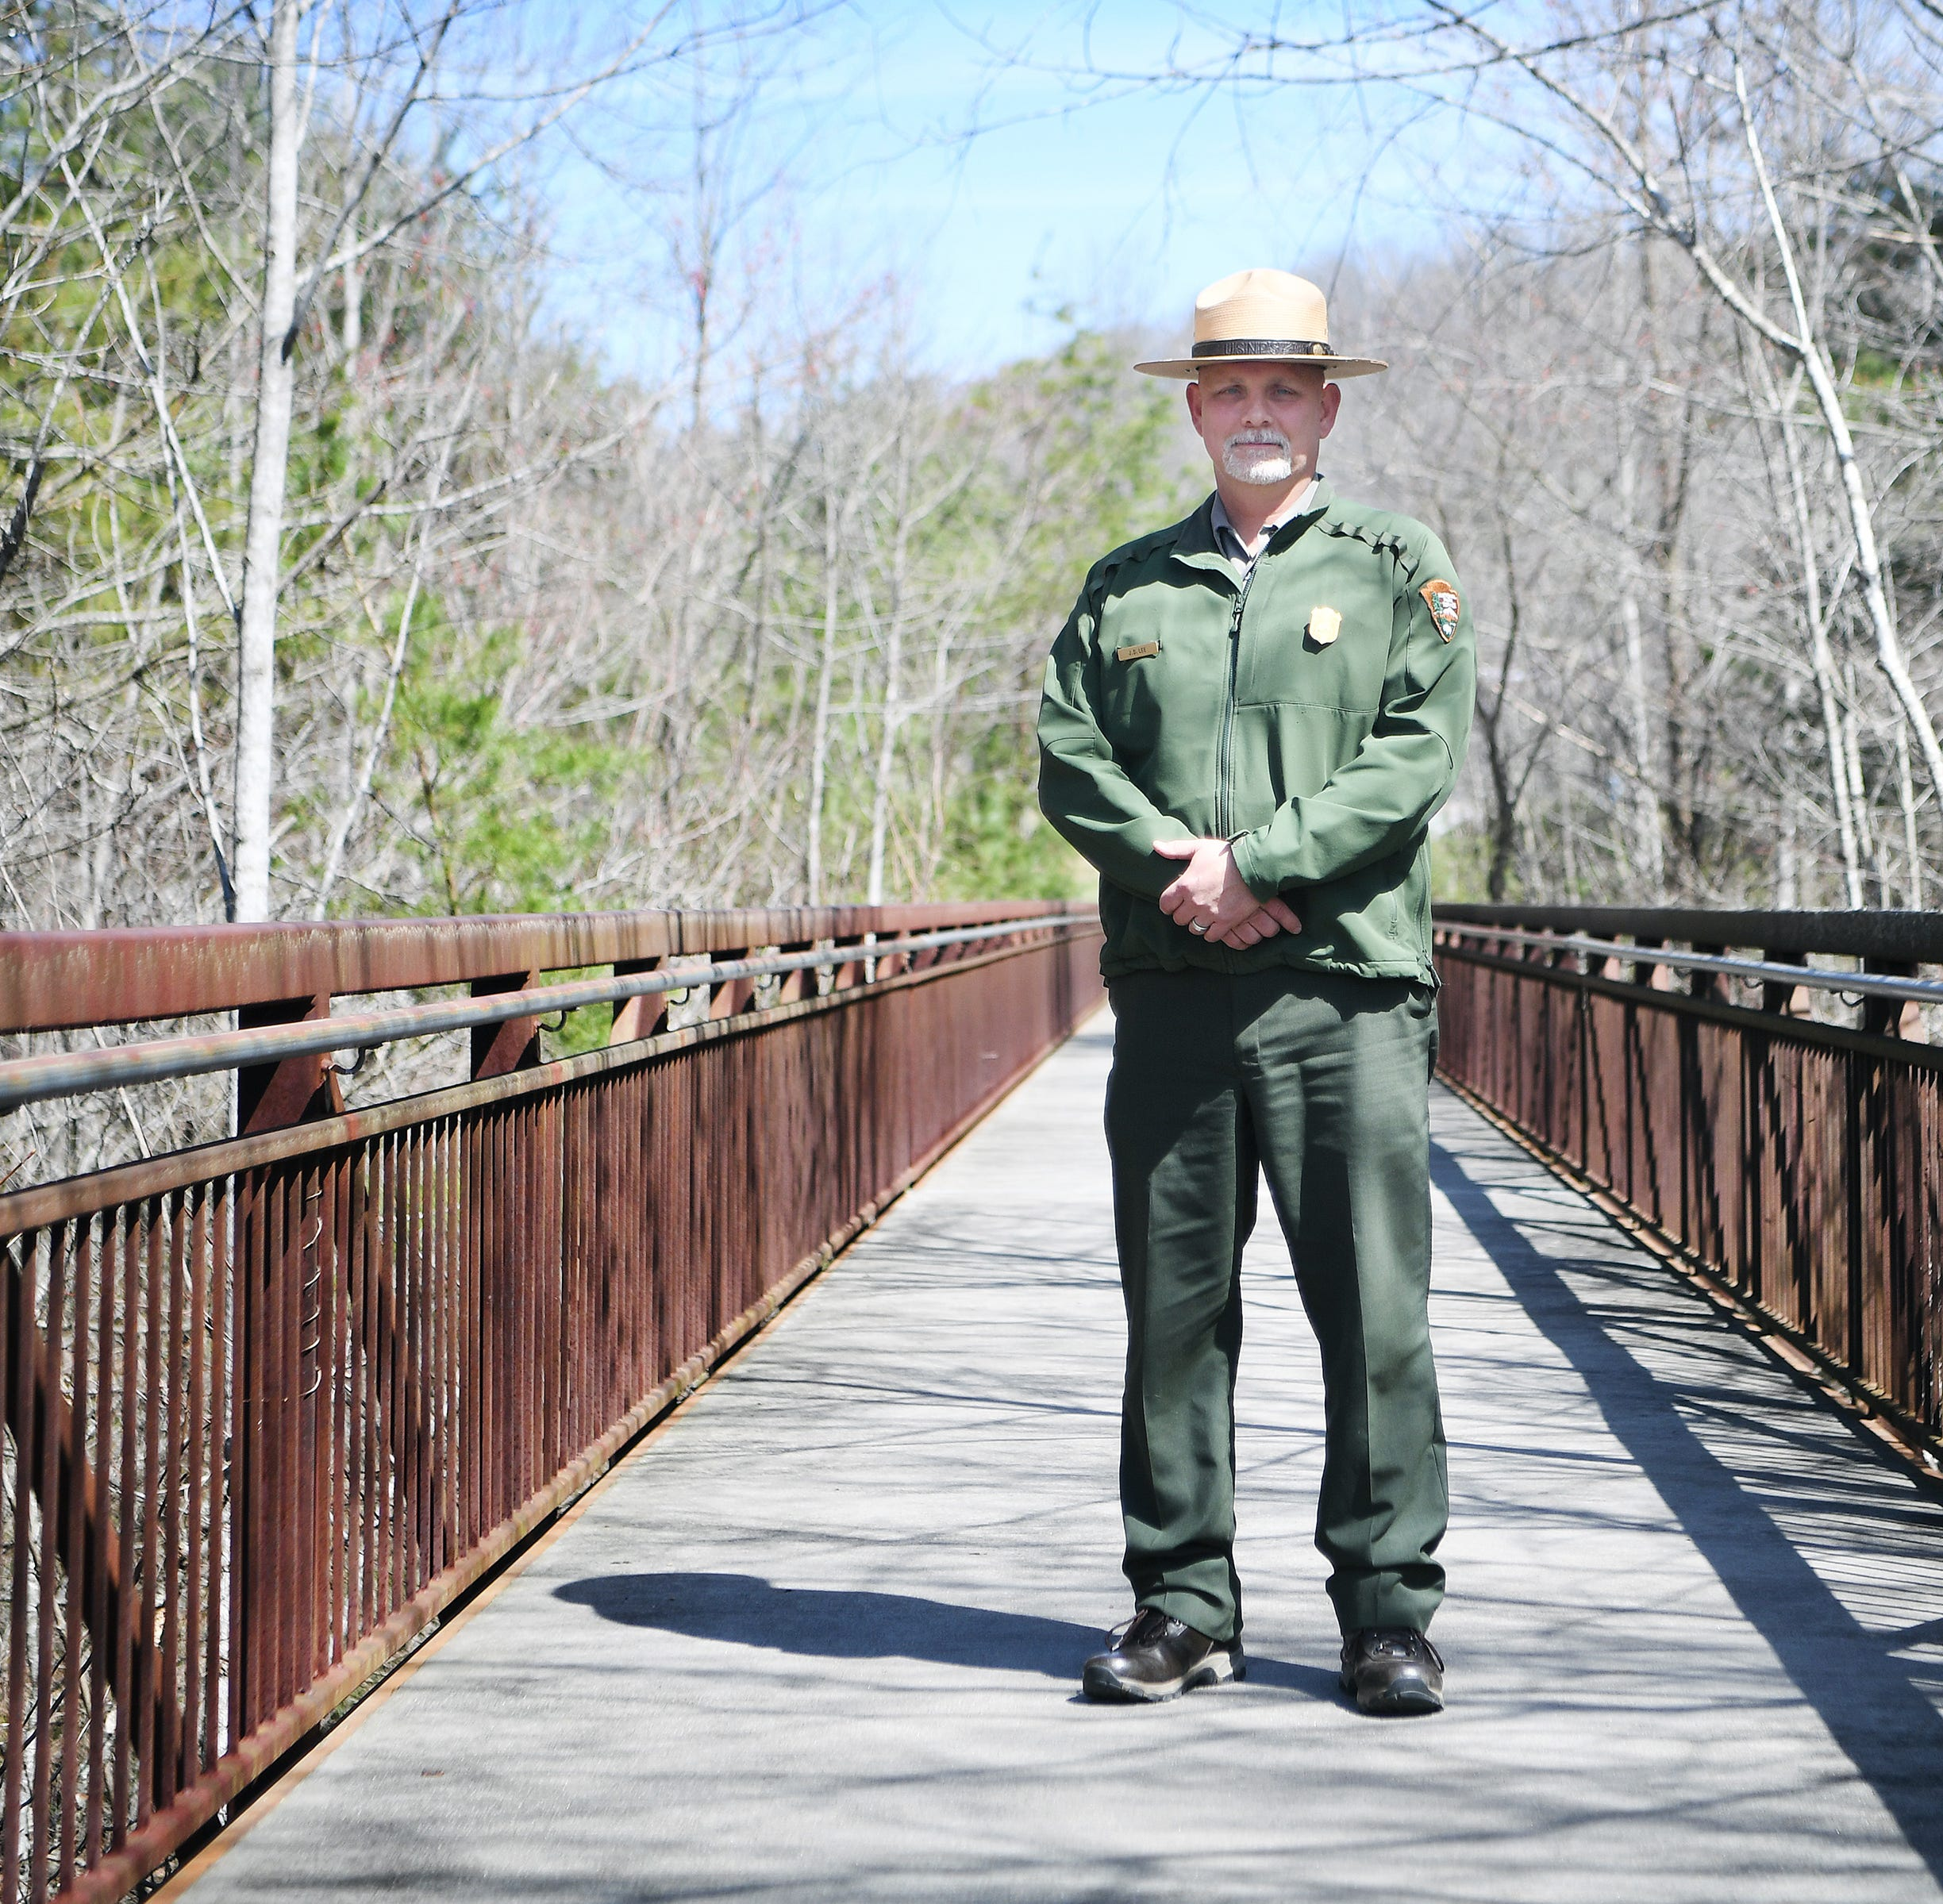 Blue Ridge Parkway Superintendent J.D. Lee talks 'complications' of one of busiest parks